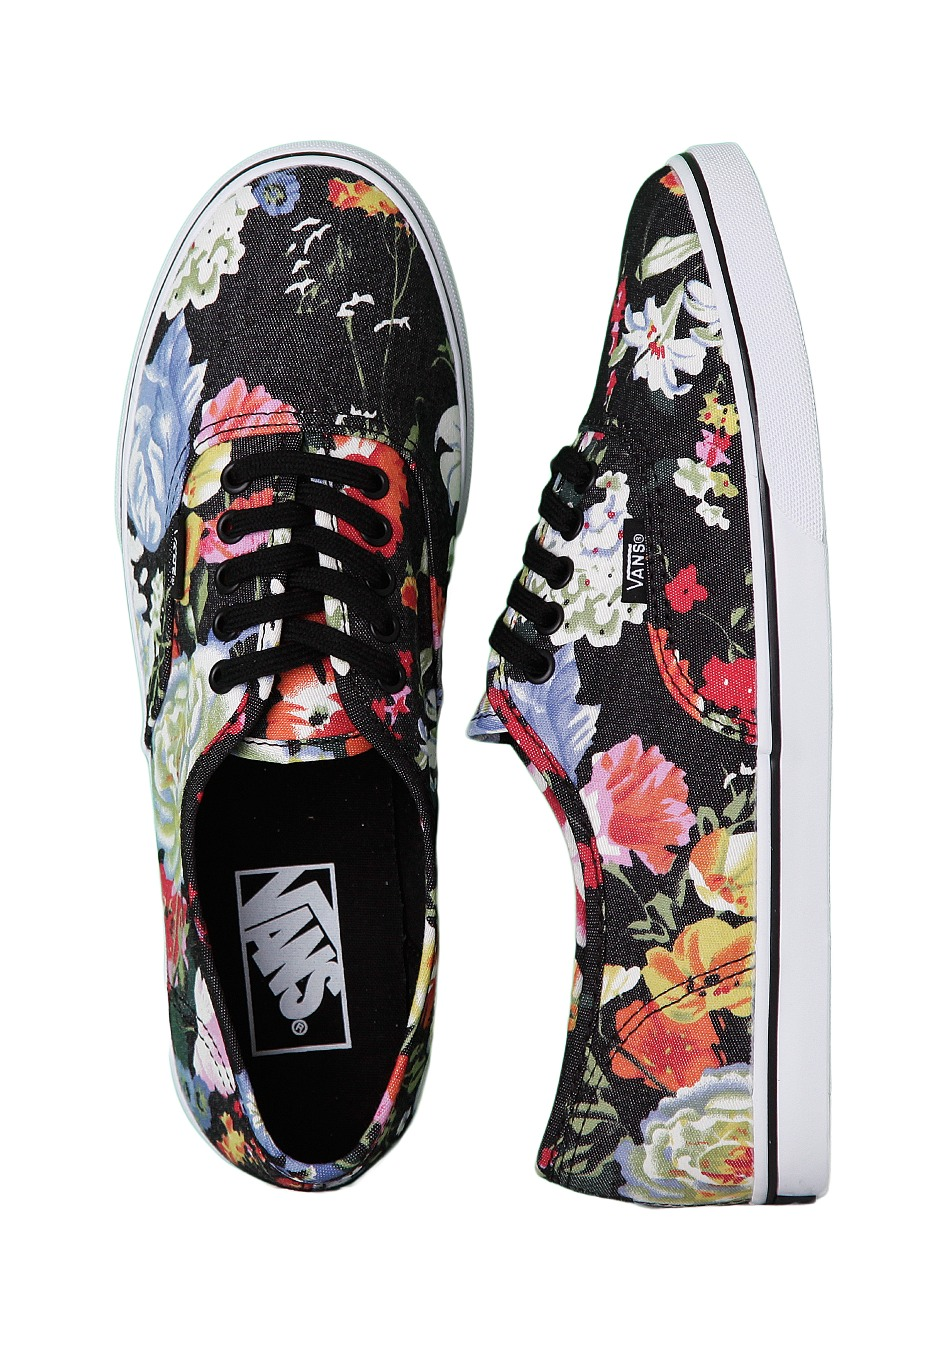 7c2b7787c57 Vans - Authentic Lo Pro Floral Black True White - Girl Shoes -  Impericon.com Worldwide